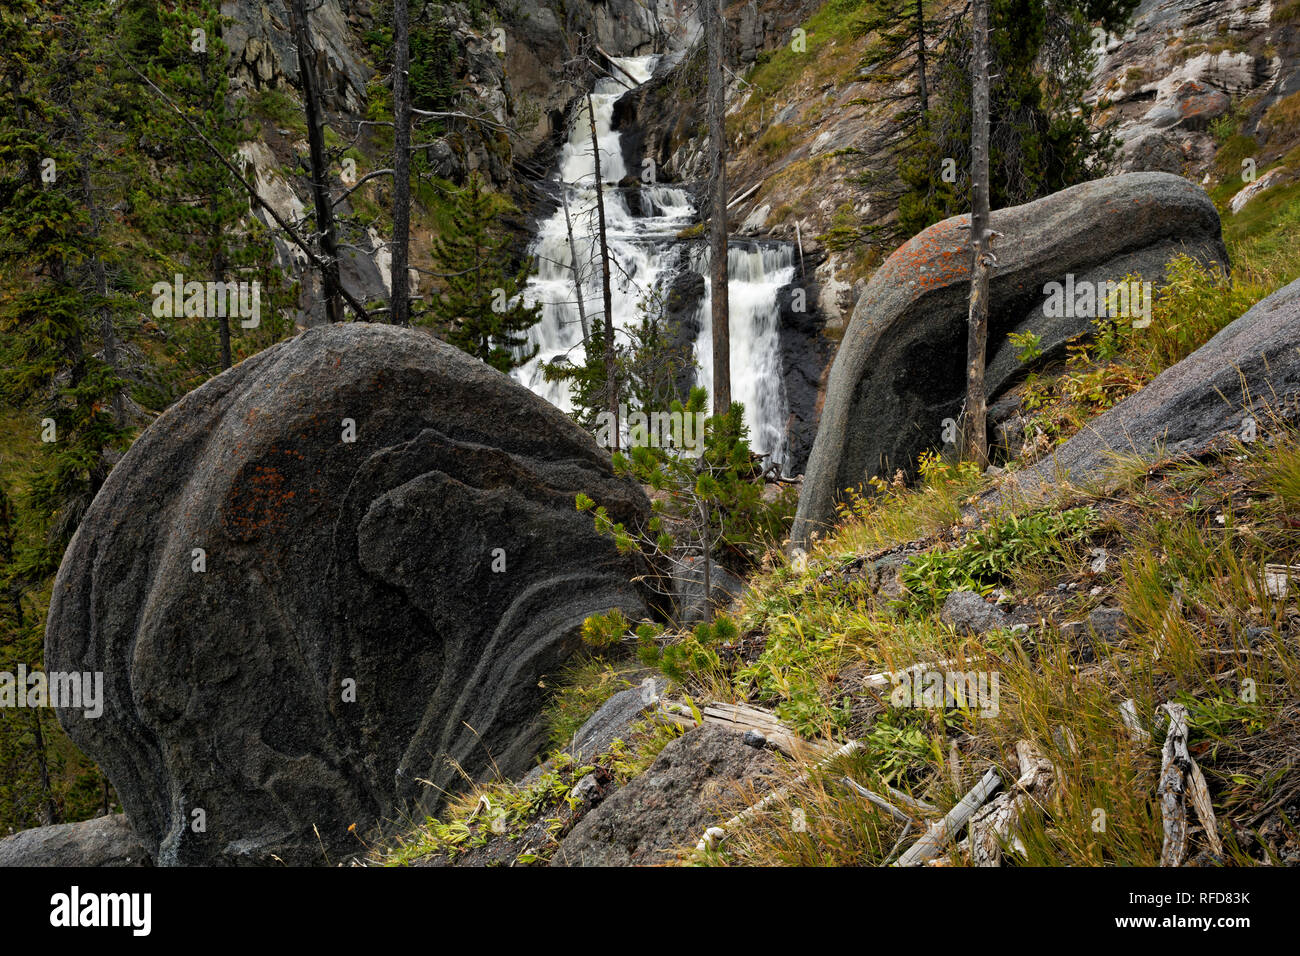 WY02949-00...WYOMING - Rounded and layered rock fins on the hillside abobe Mystic Falls located on the Little Firehole River in Yellowstone National P - Stock Image